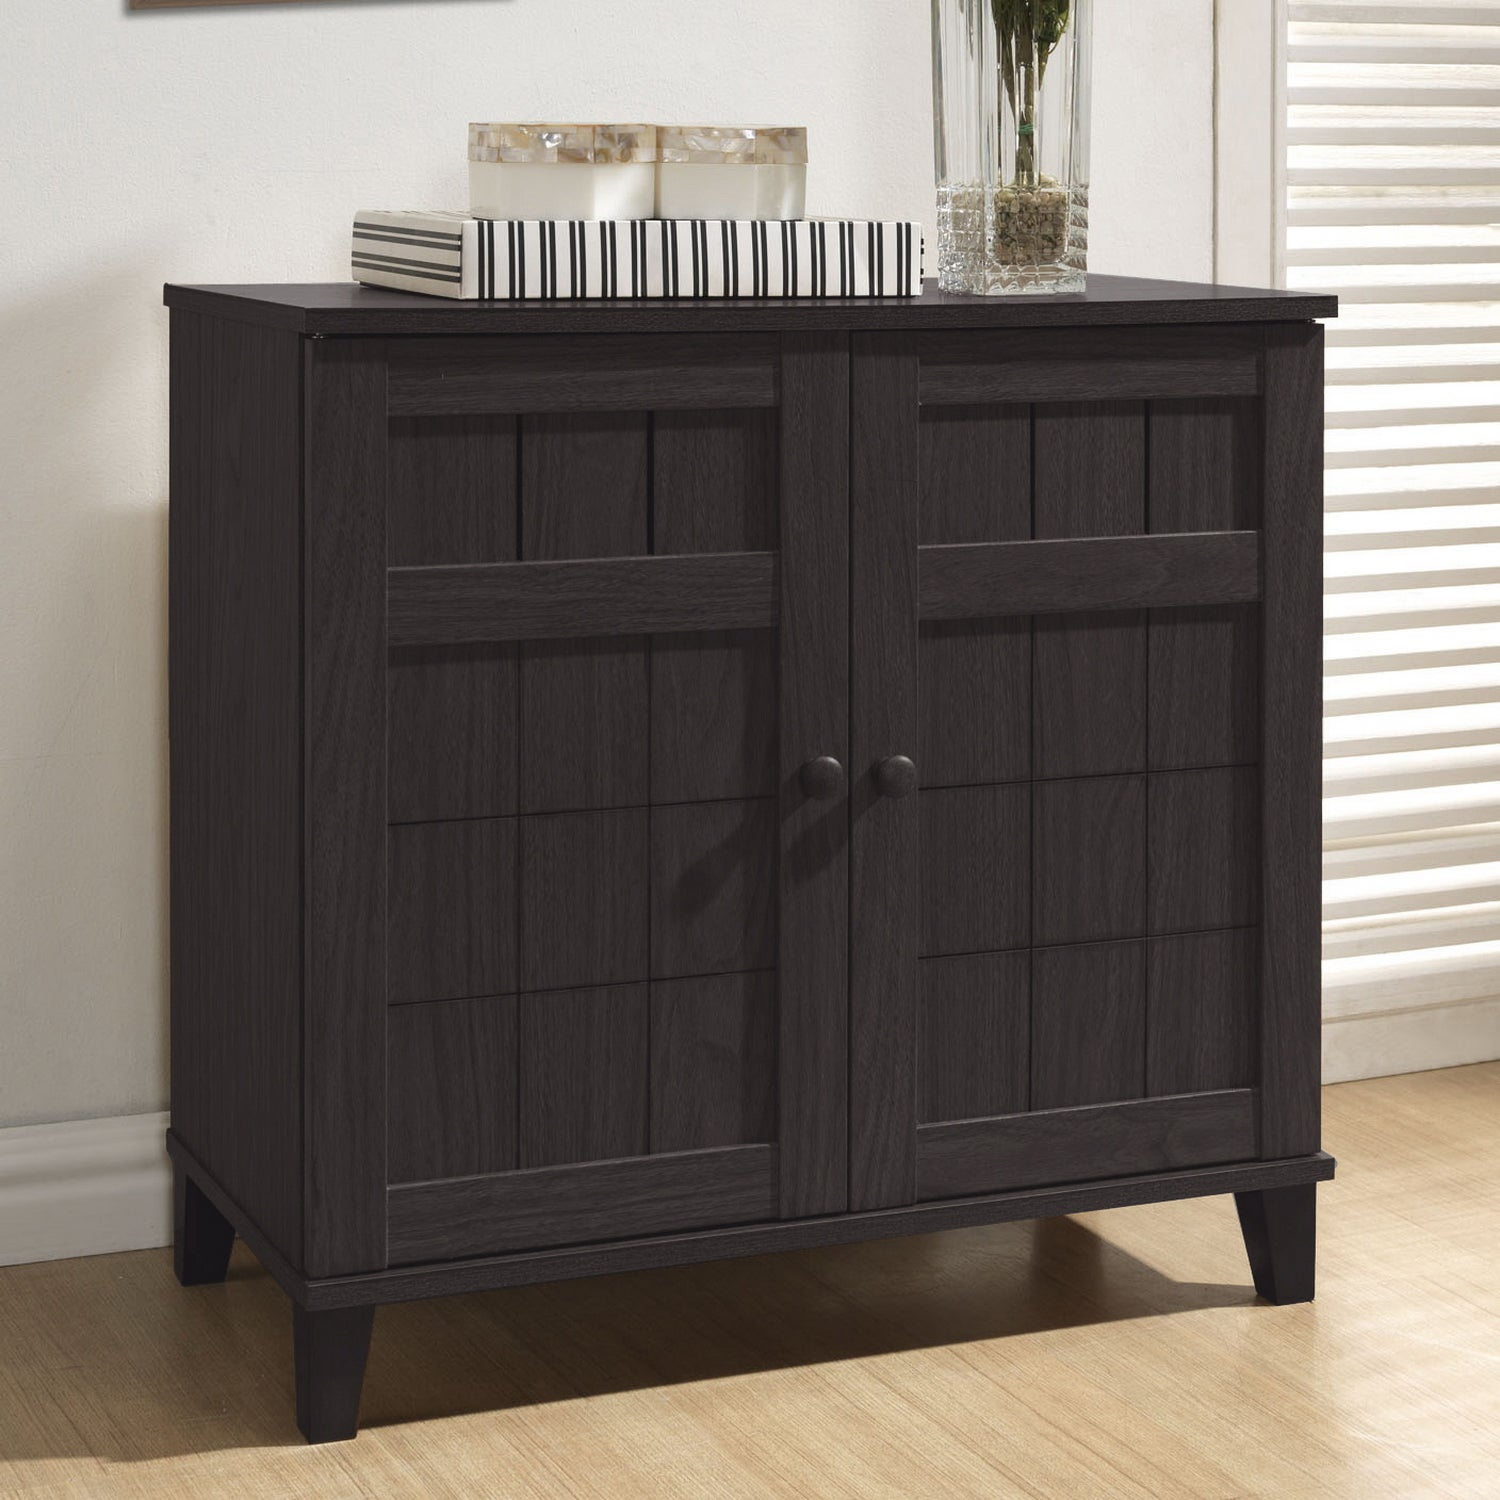 Foyer Table Cabinet : Shoe cabinet wood wardrobe storage organizer foyer